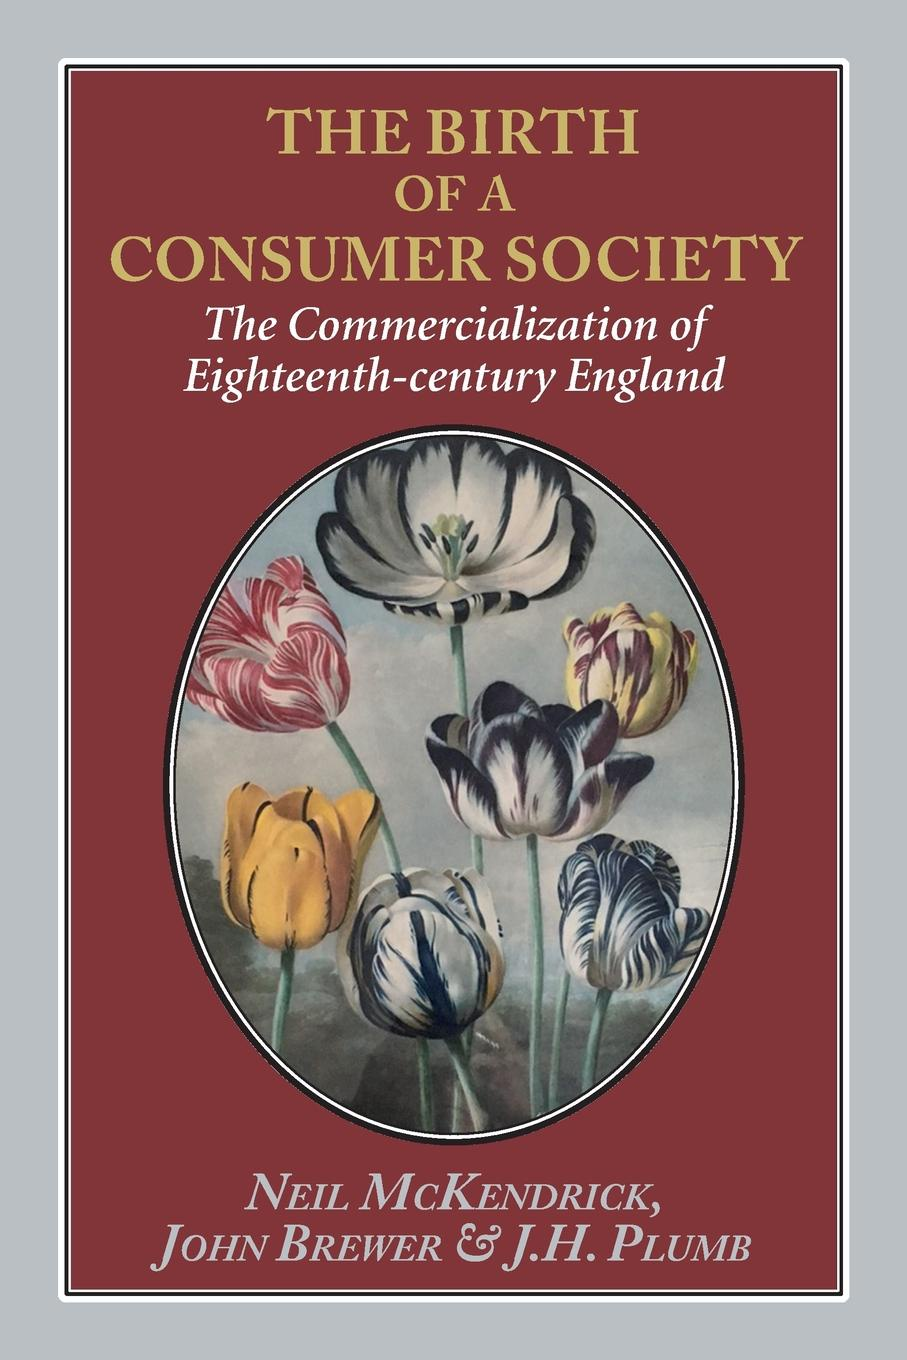 Neil McKendrick, John Brewer, JH Plumb The Birth of a Consumer Society. The Commercialization of Eighteenth-century England ashton john the dawn of the xixth century in england